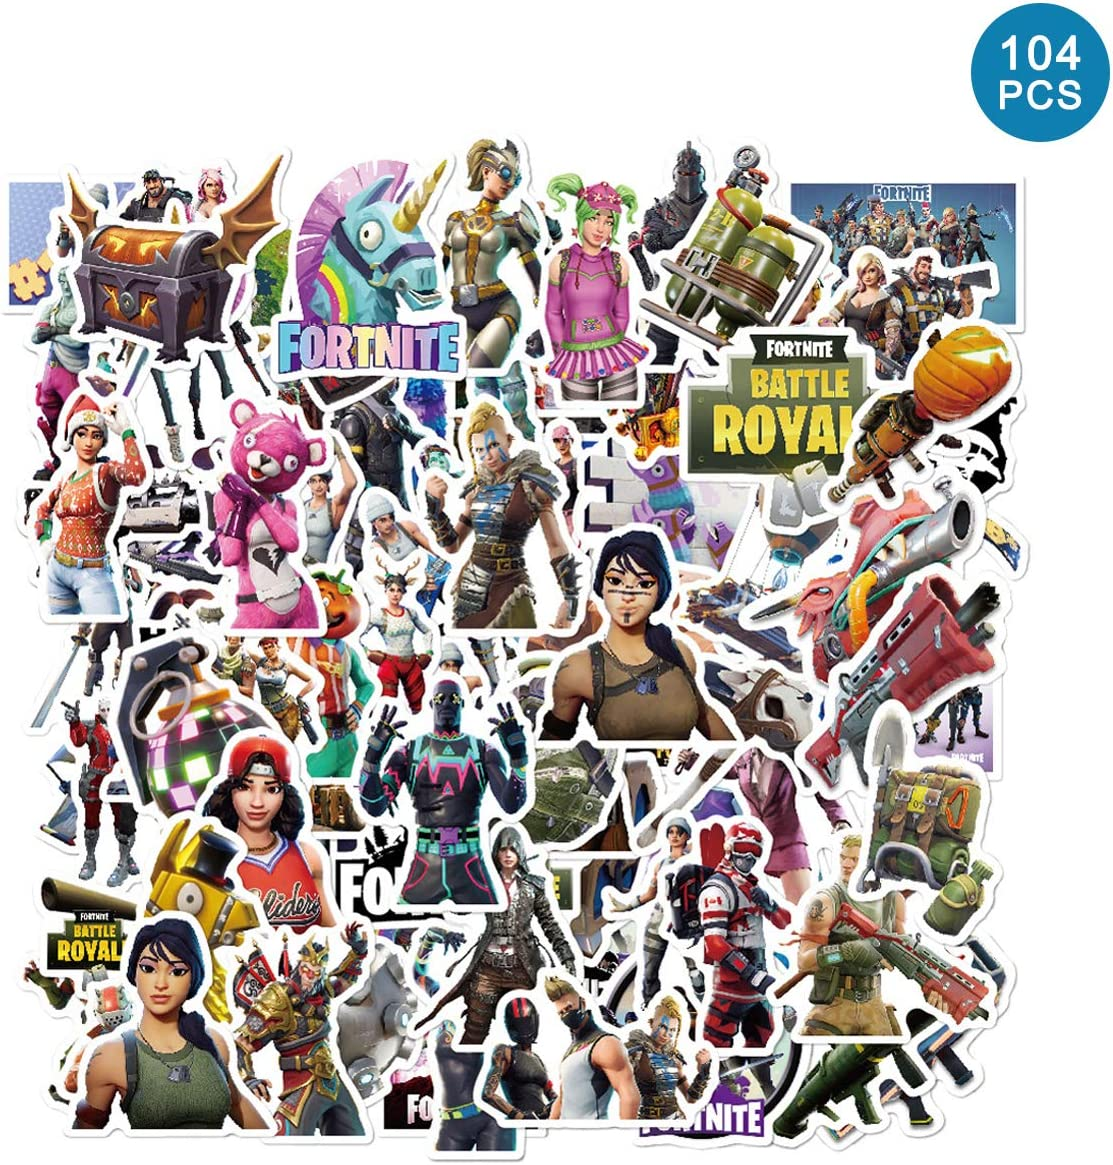 104pcs Fort_nite Stickers - Art Focus Gaming Stickers for Water Bottles Laptops Travel Case